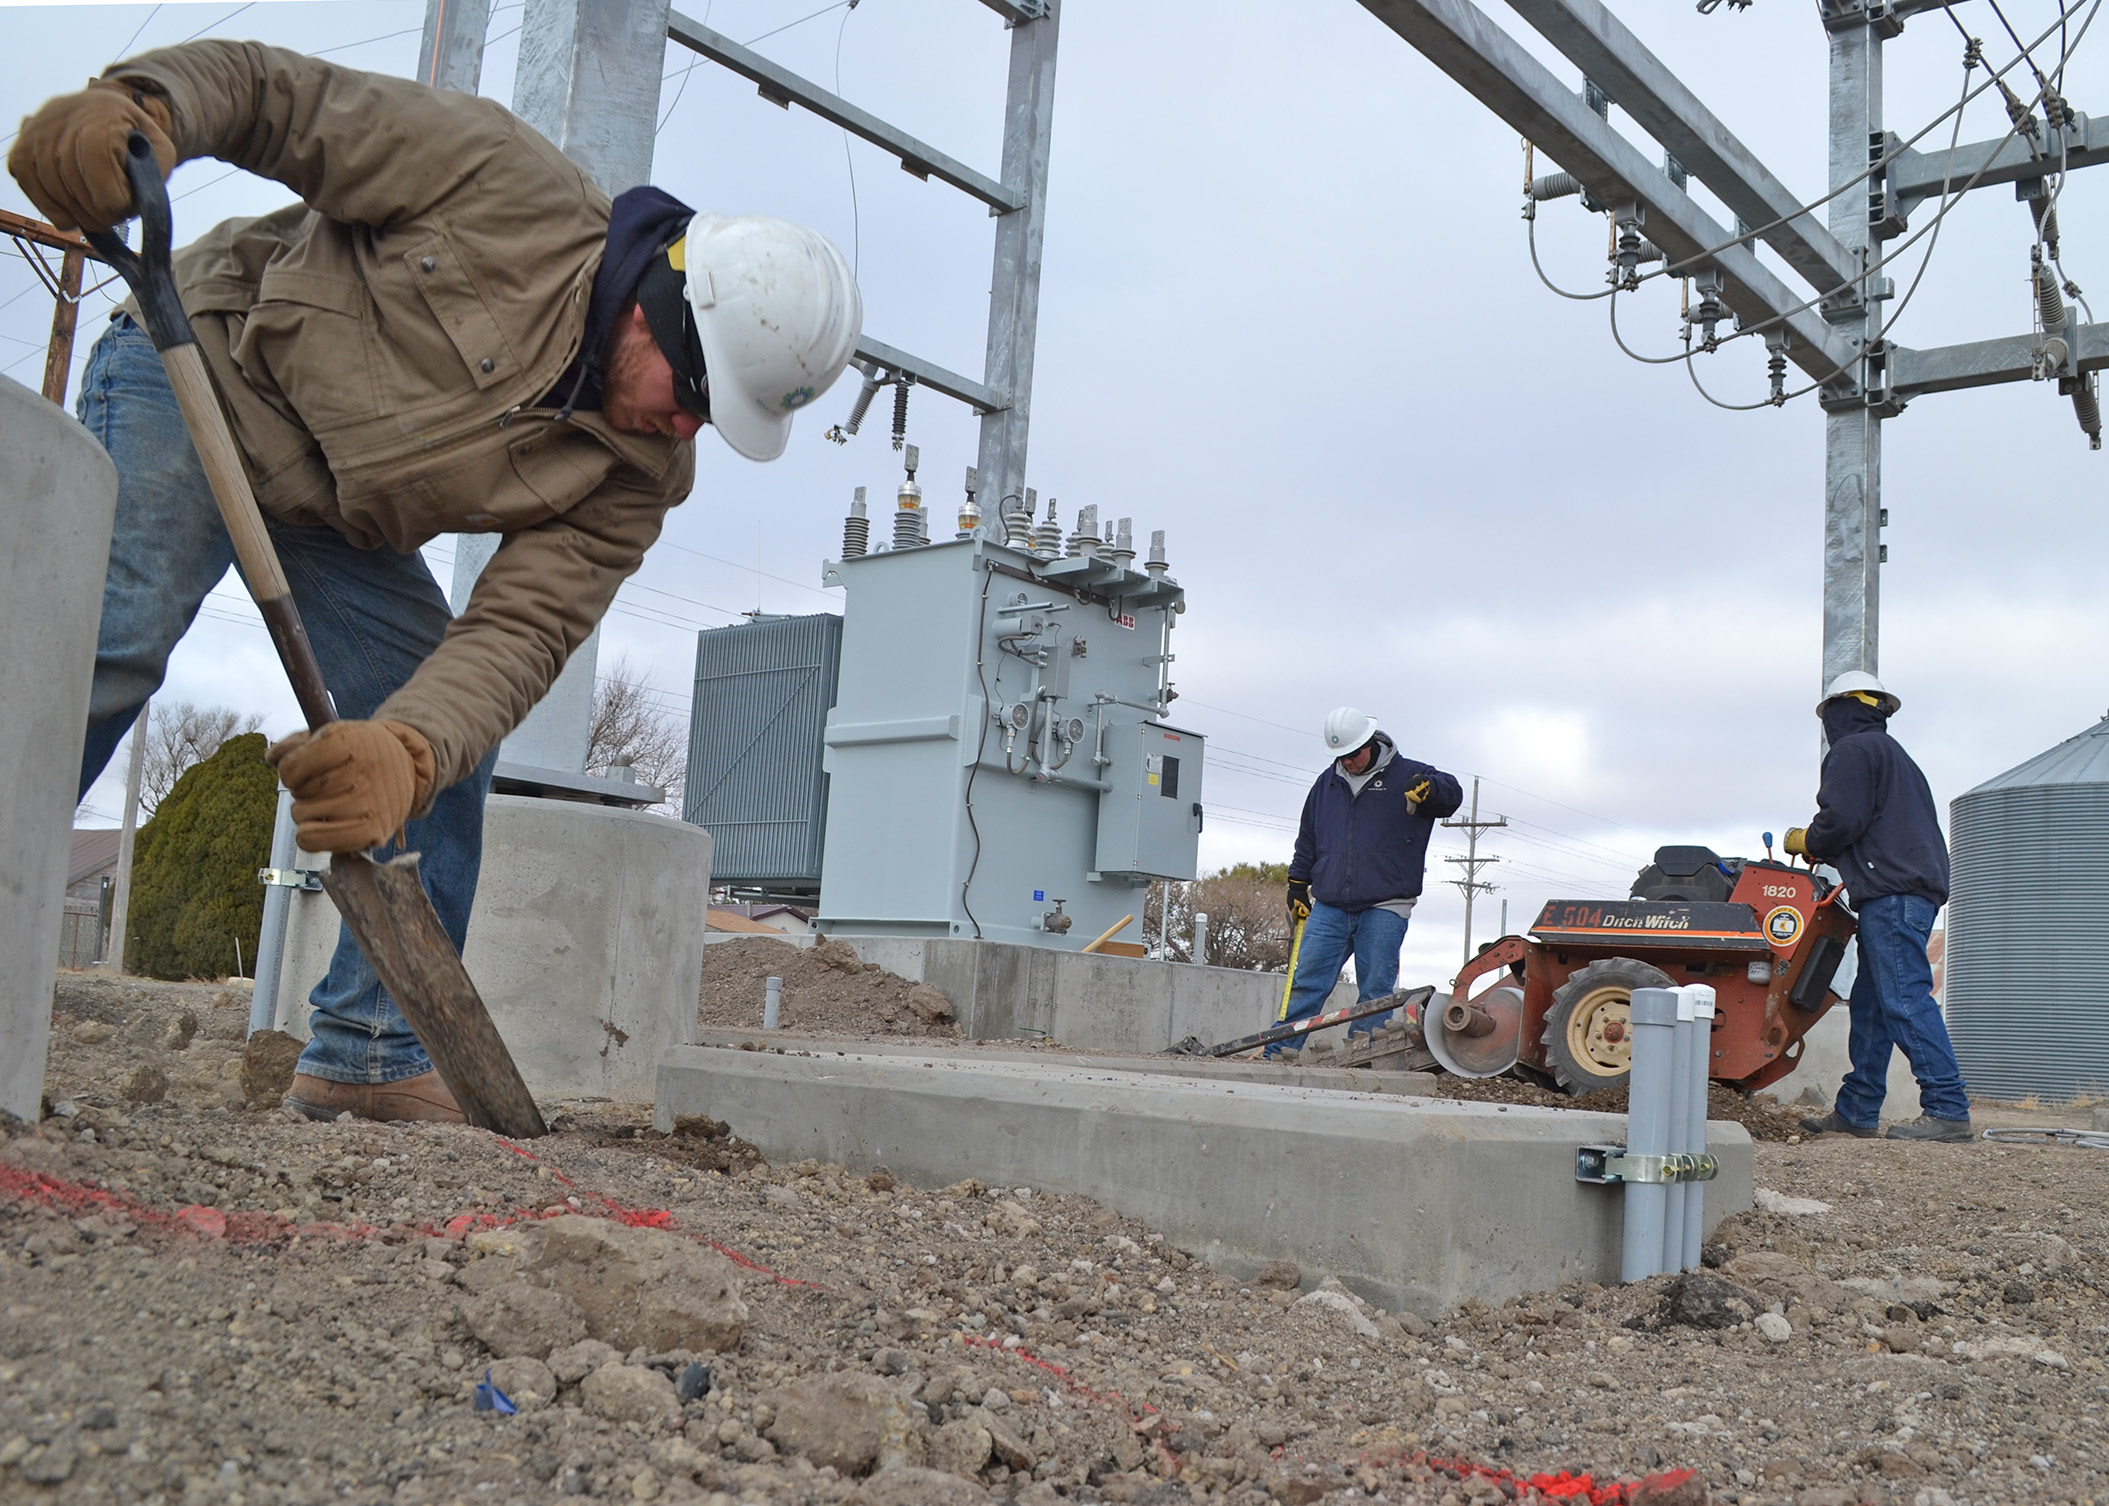 A photo of Midwest Energy linemen shoveling a trench, and operating a trenching machine, inside a new substation in Winona, Kansas.